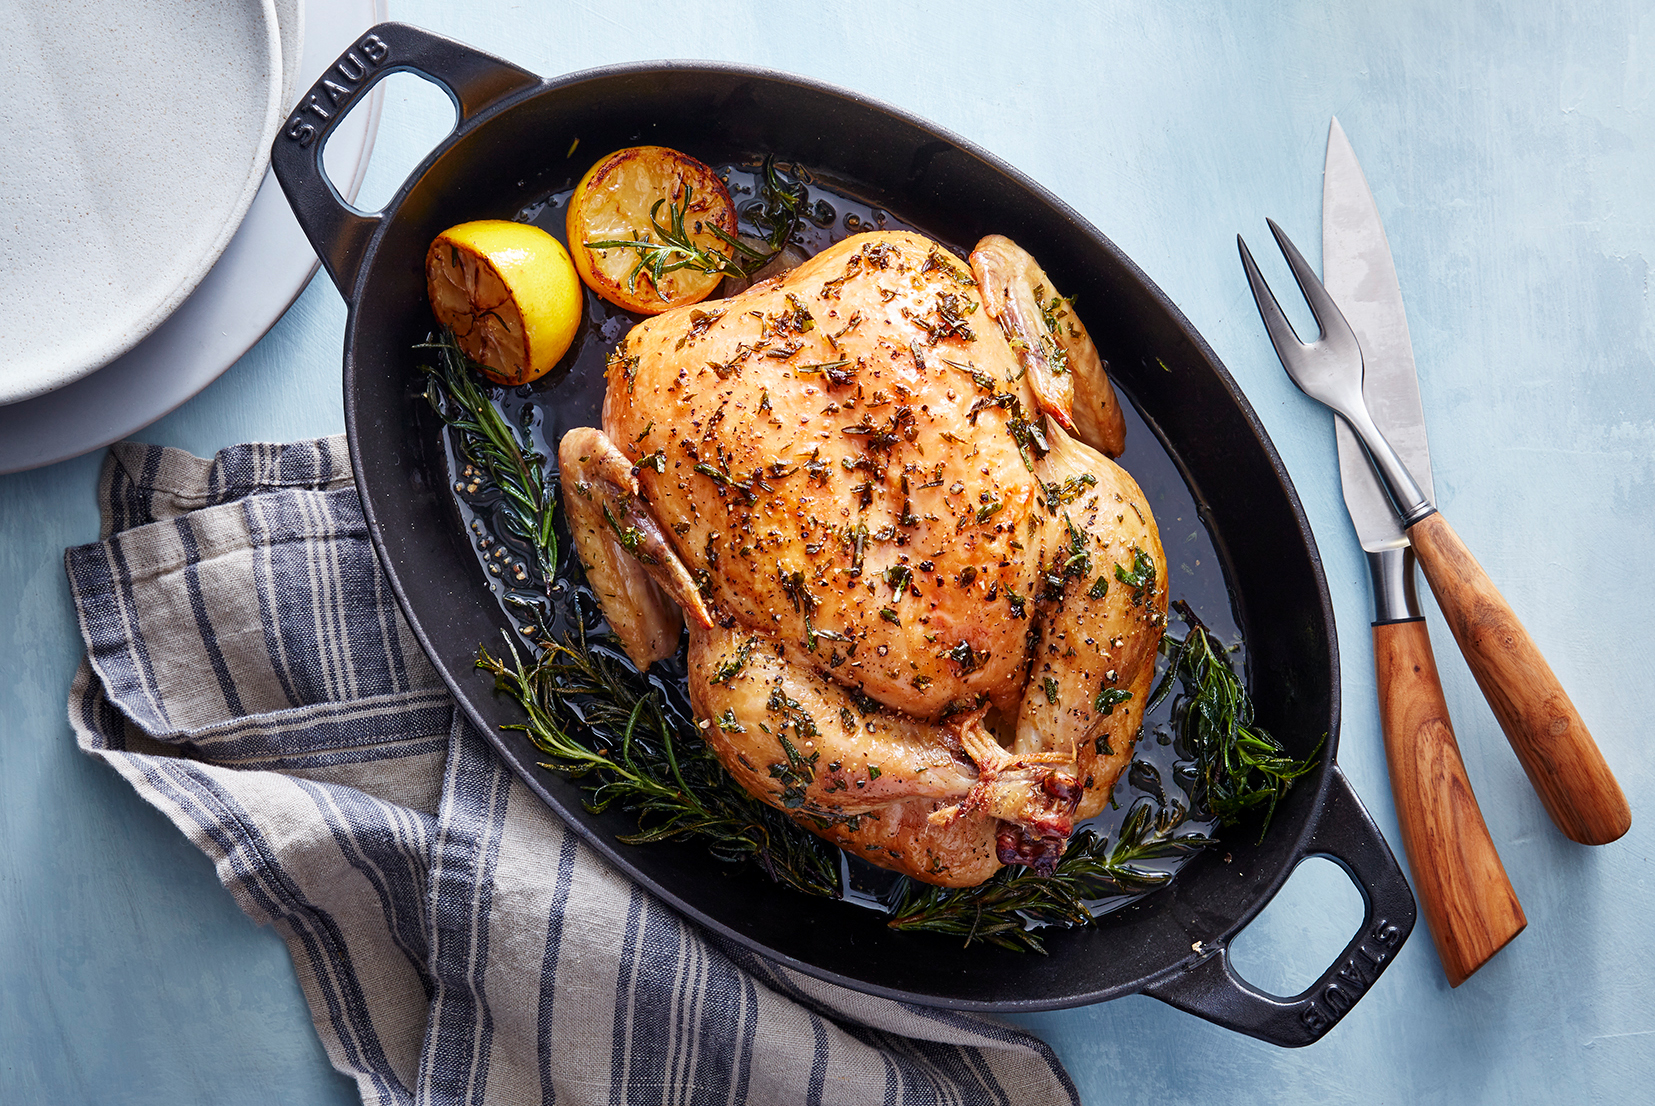 13 Family-Friendly Roasting Recipes That Are Delicious & Hassle-Free